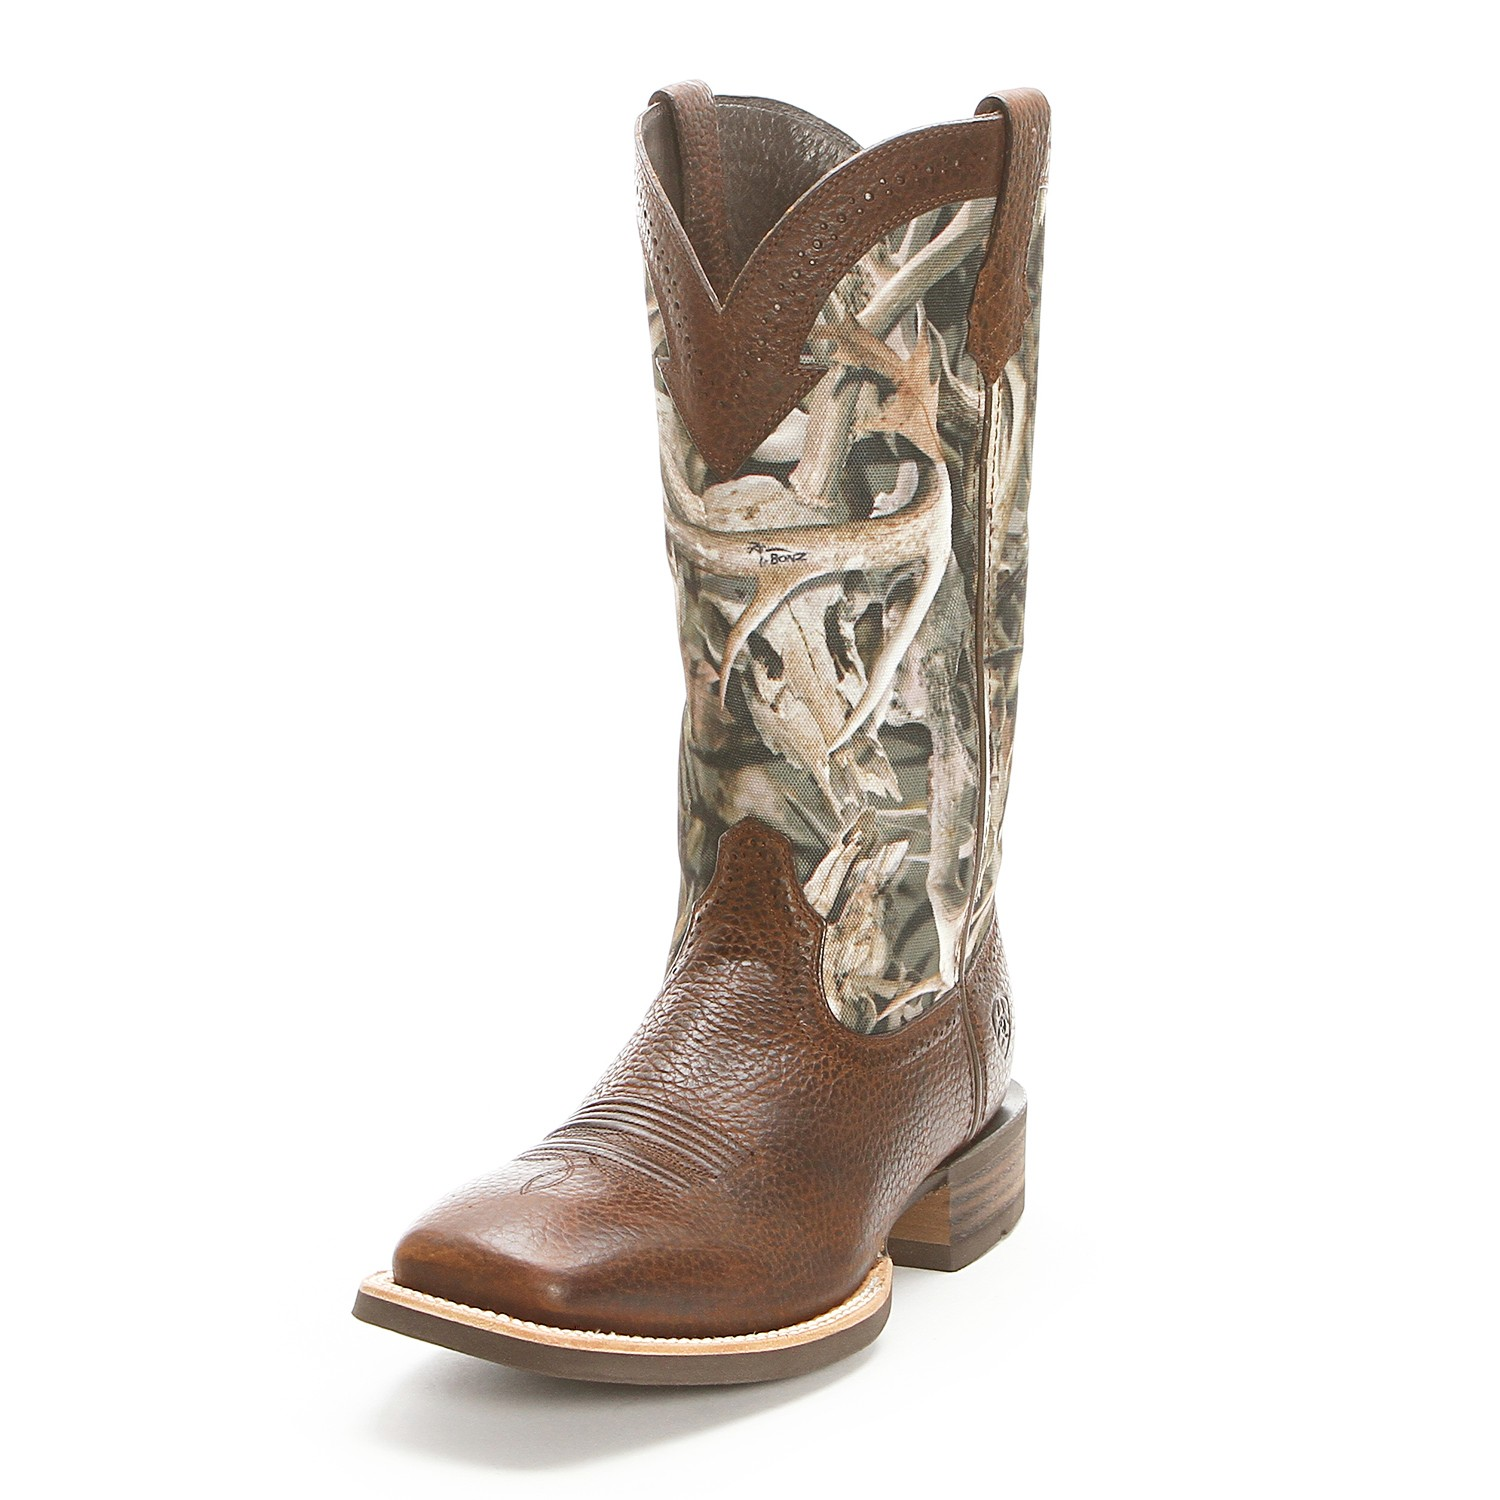 Mens Cowboy Boots Cheap BxLLnGhW